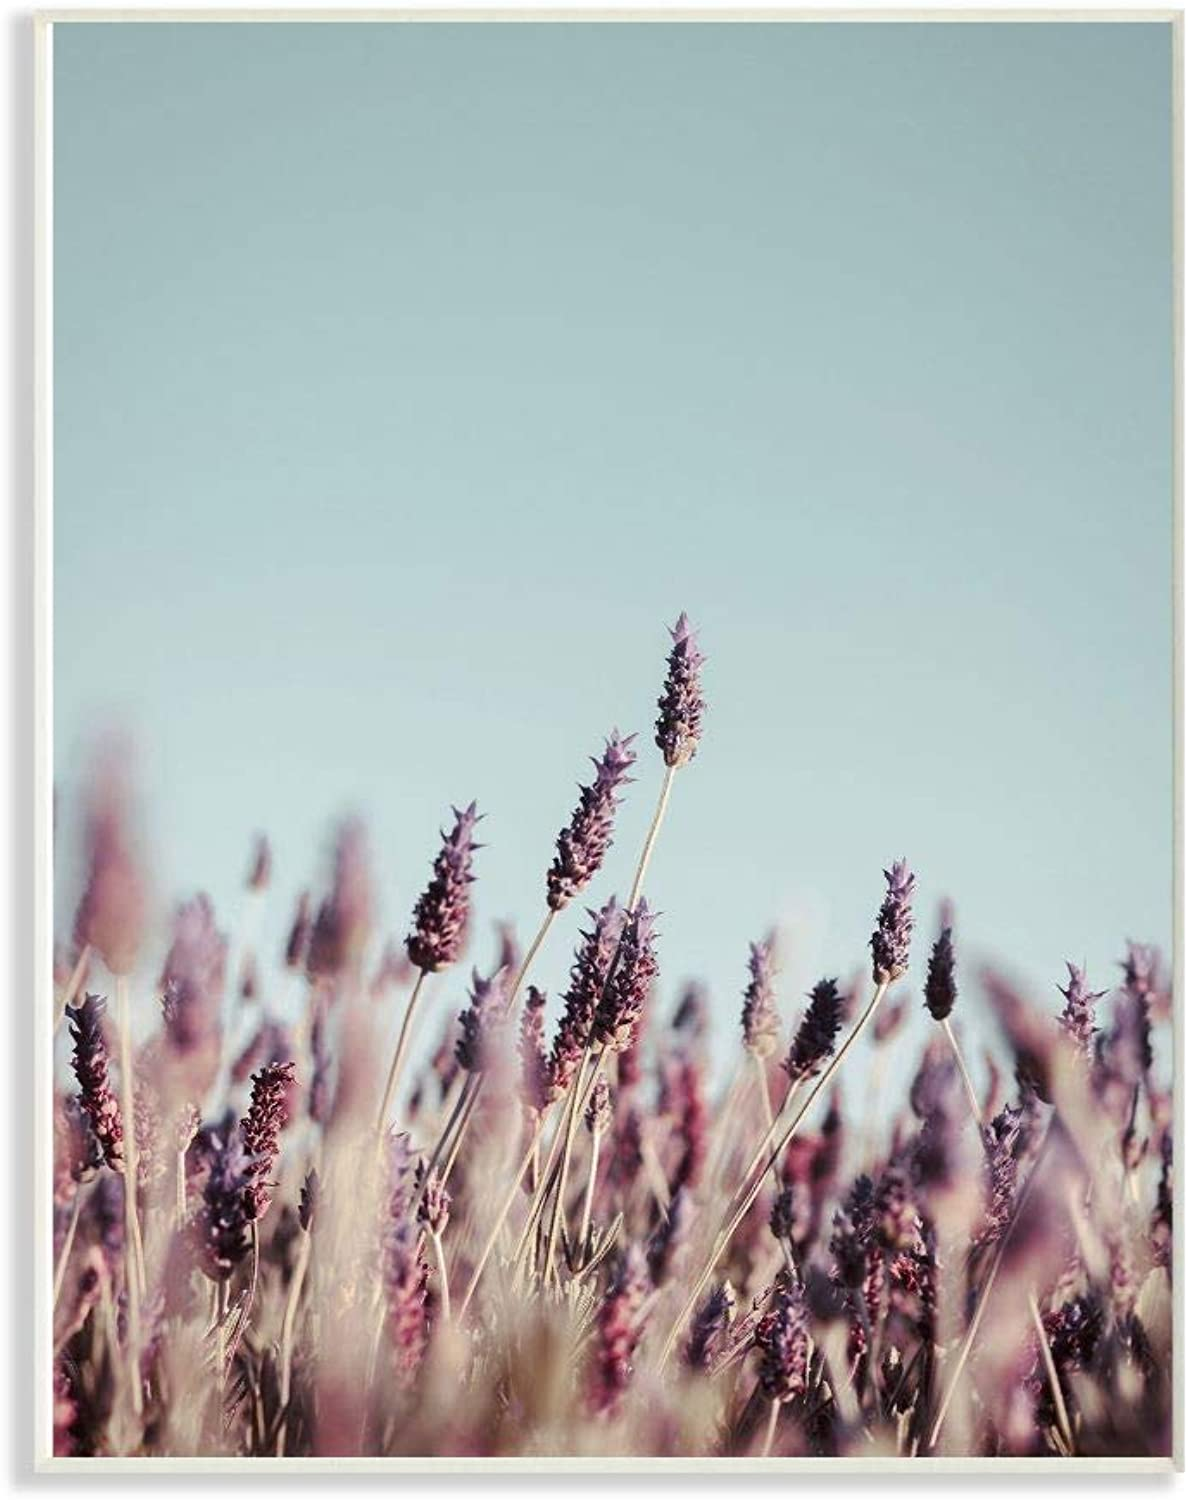 The Stupell Home Decor Collection pap-112_wd_12x18 Close Up of Field Plants Photography Wall Plaque Art, 12 x 18